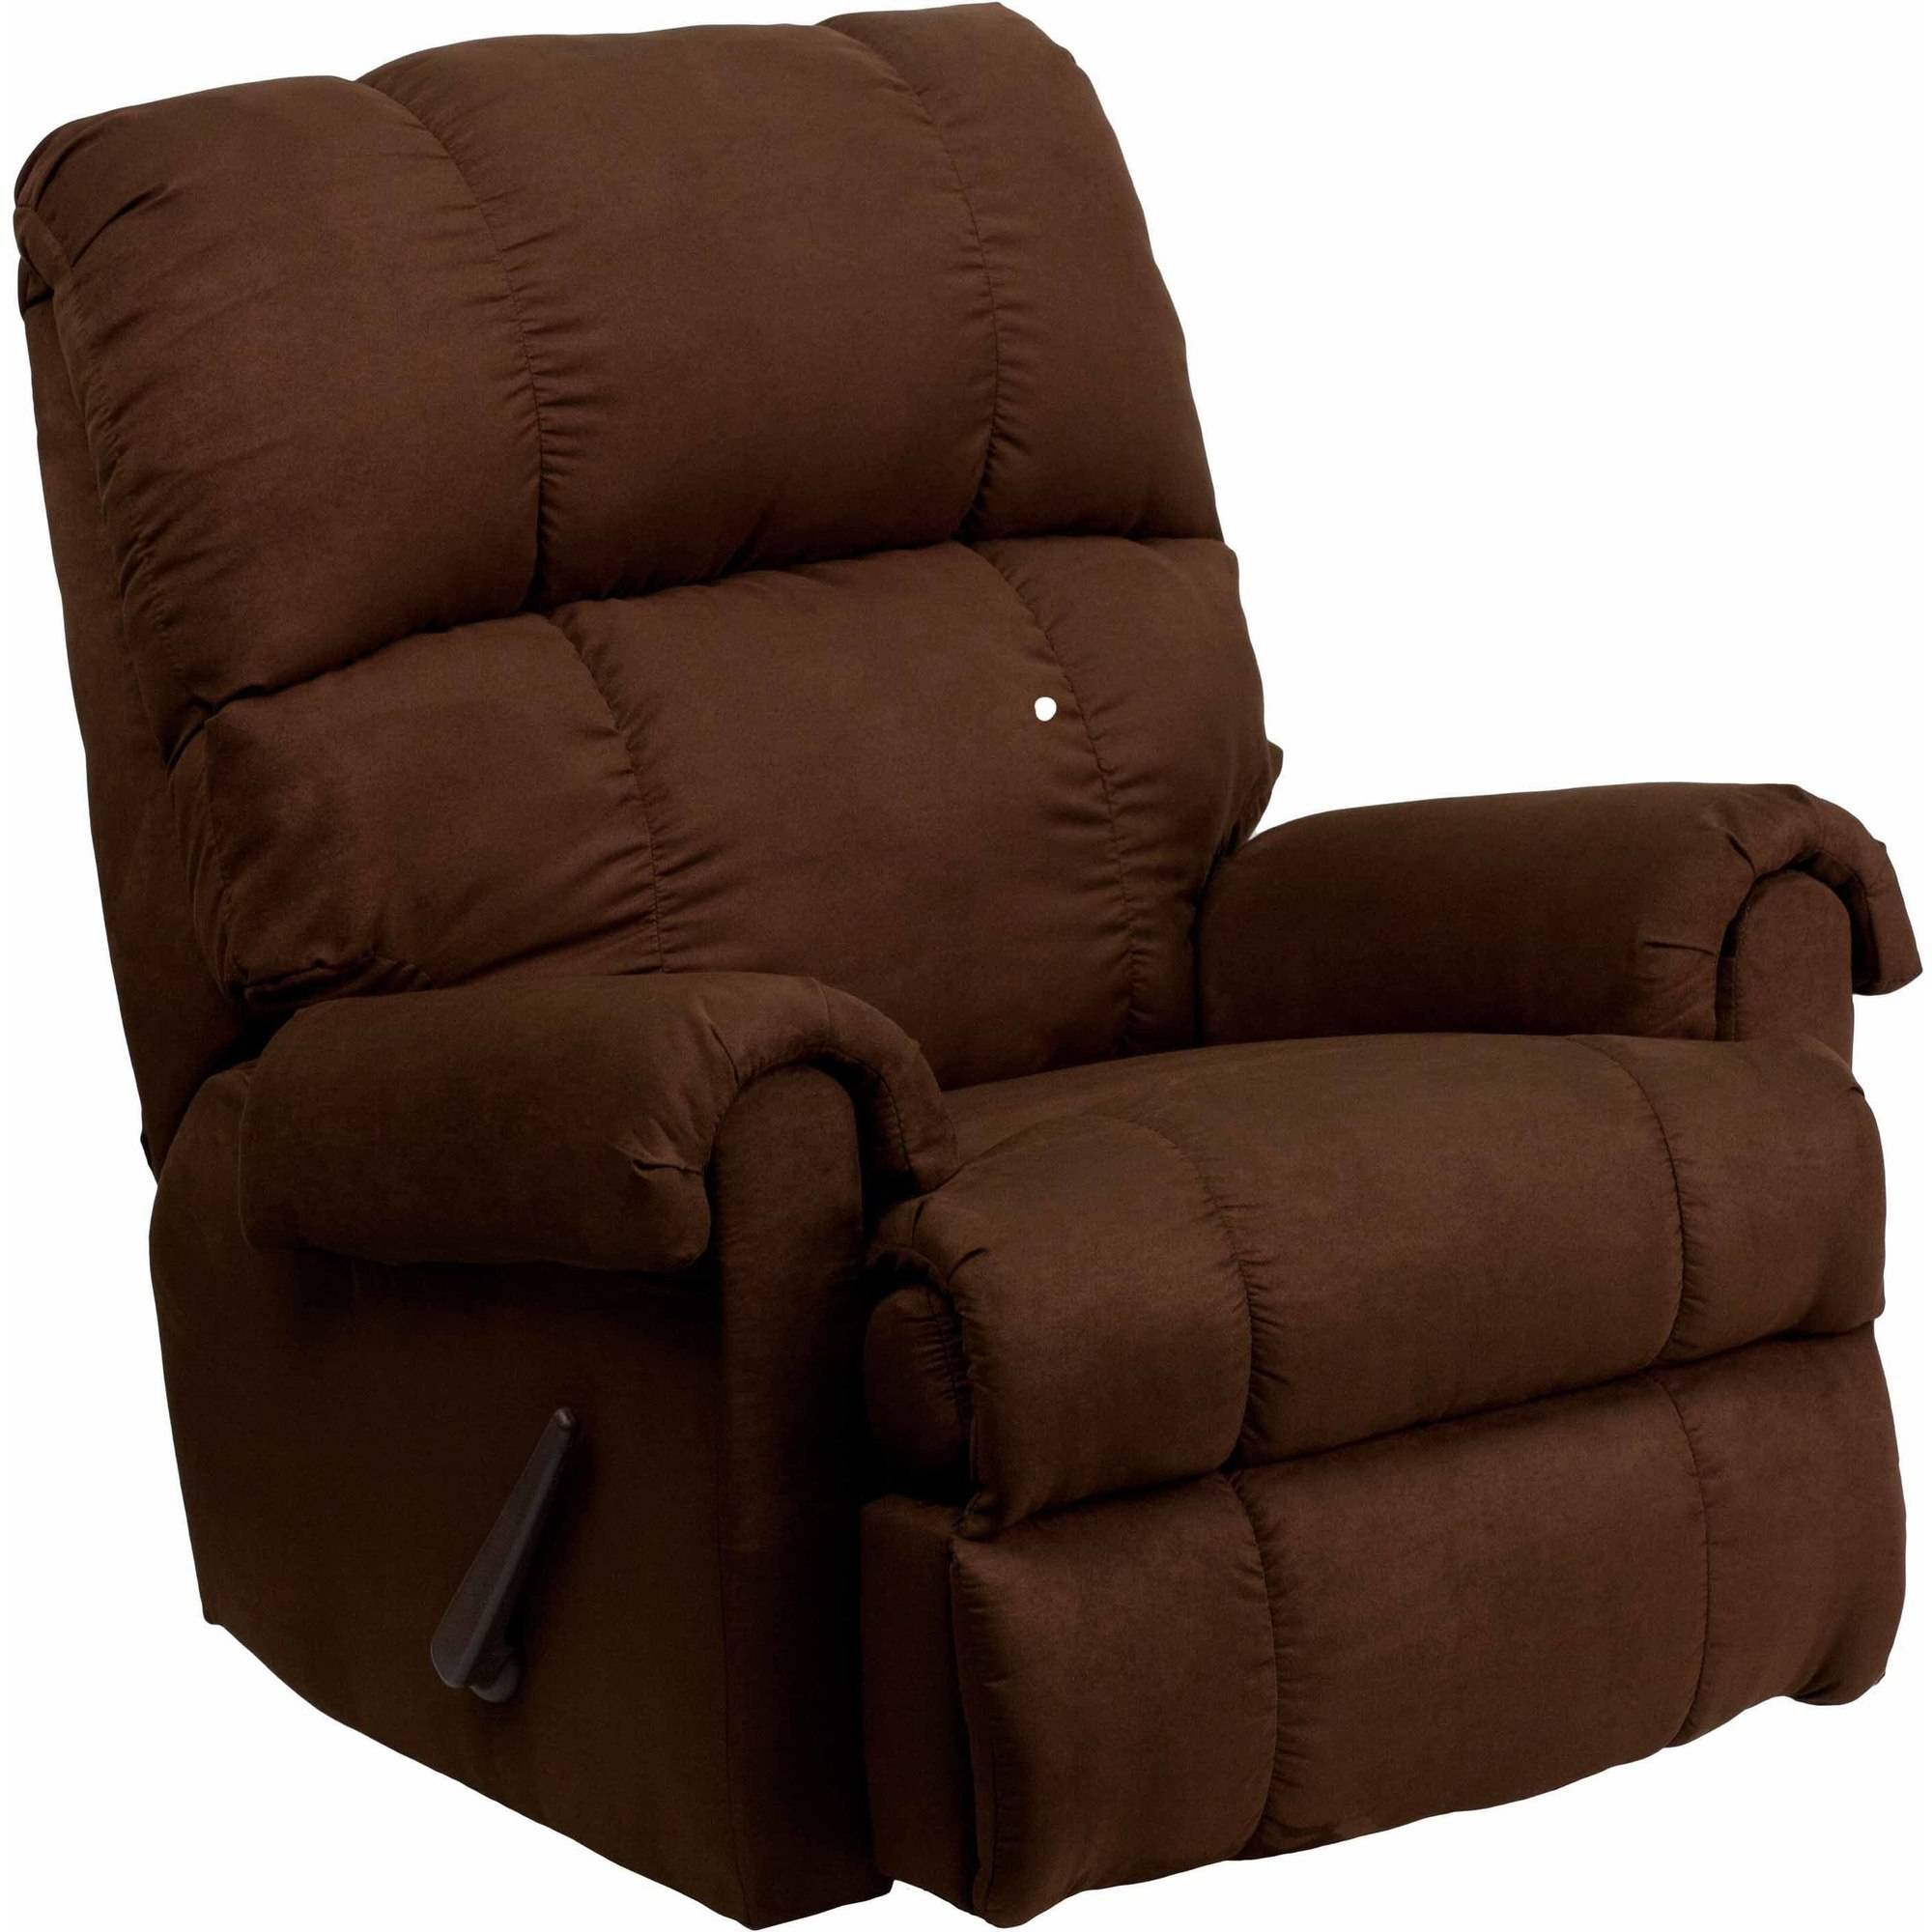 Flash Furniture Contemporary Flatsuede Microfiber Rocker Recliner, Multiple Colors